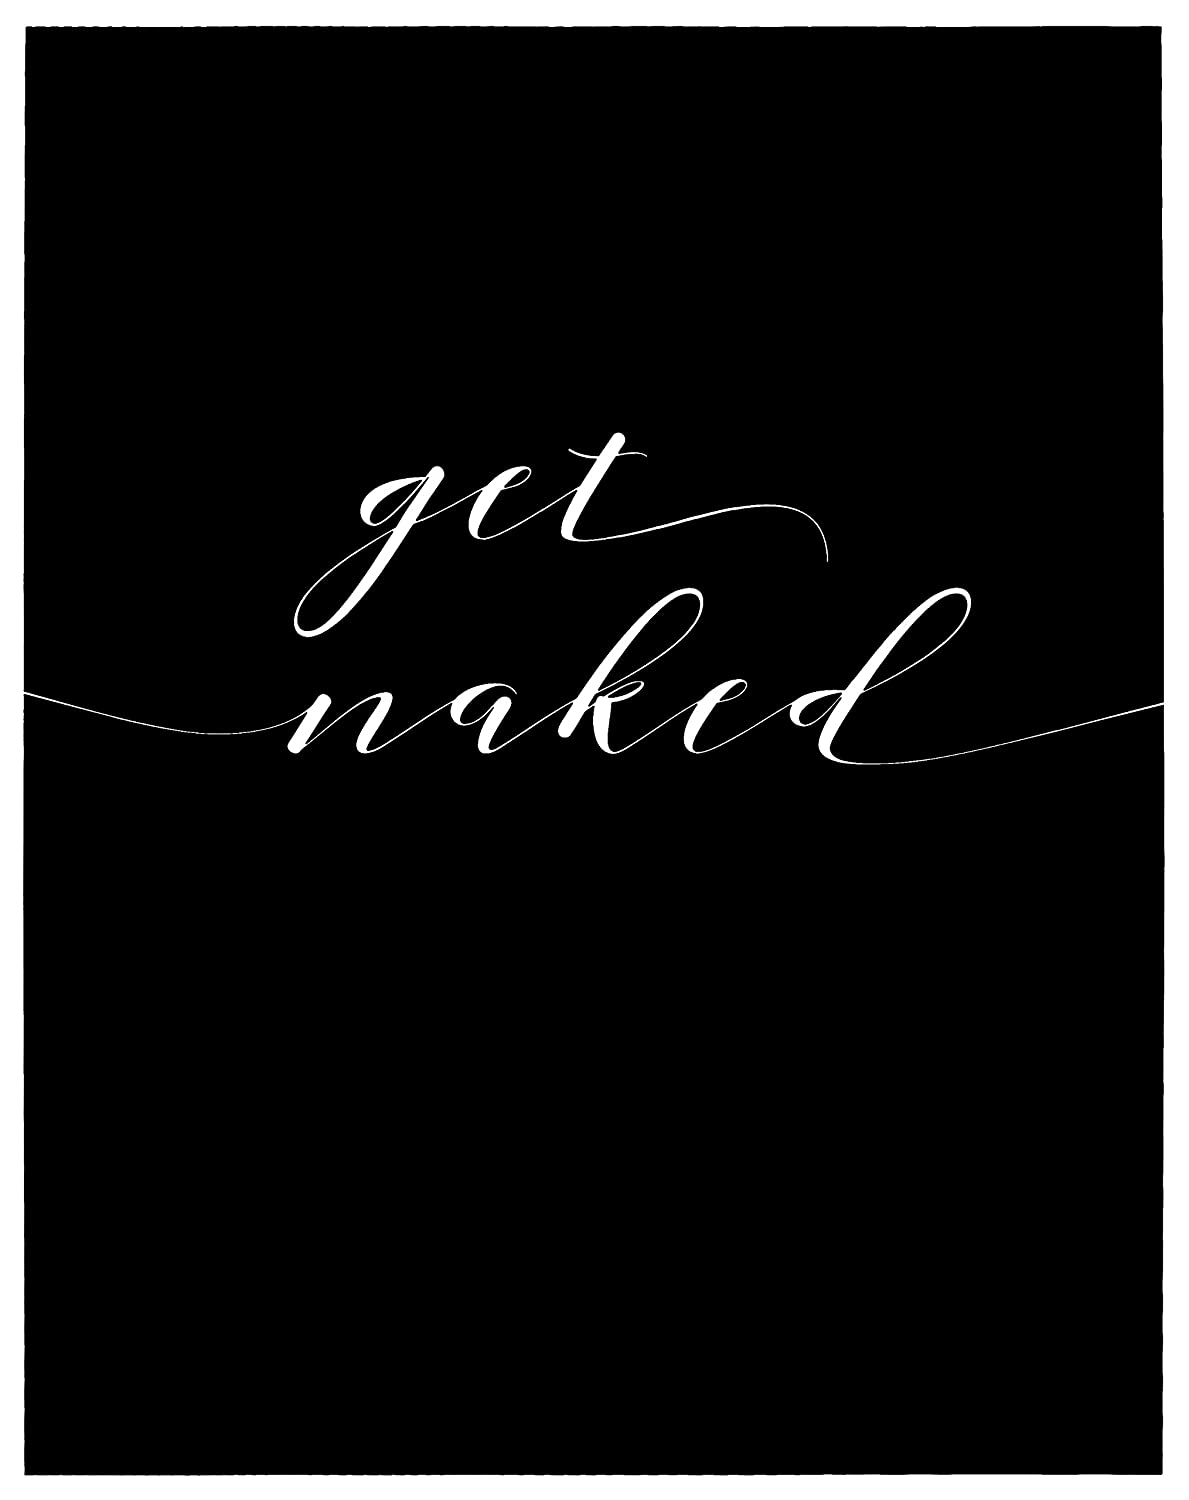 Get Naked, 11x14 Unframed Art Print, Funny Bathroom Wall Decor, Housewarming Gift for Newlyweds, Couples or Single Friend, Great Gift for Him